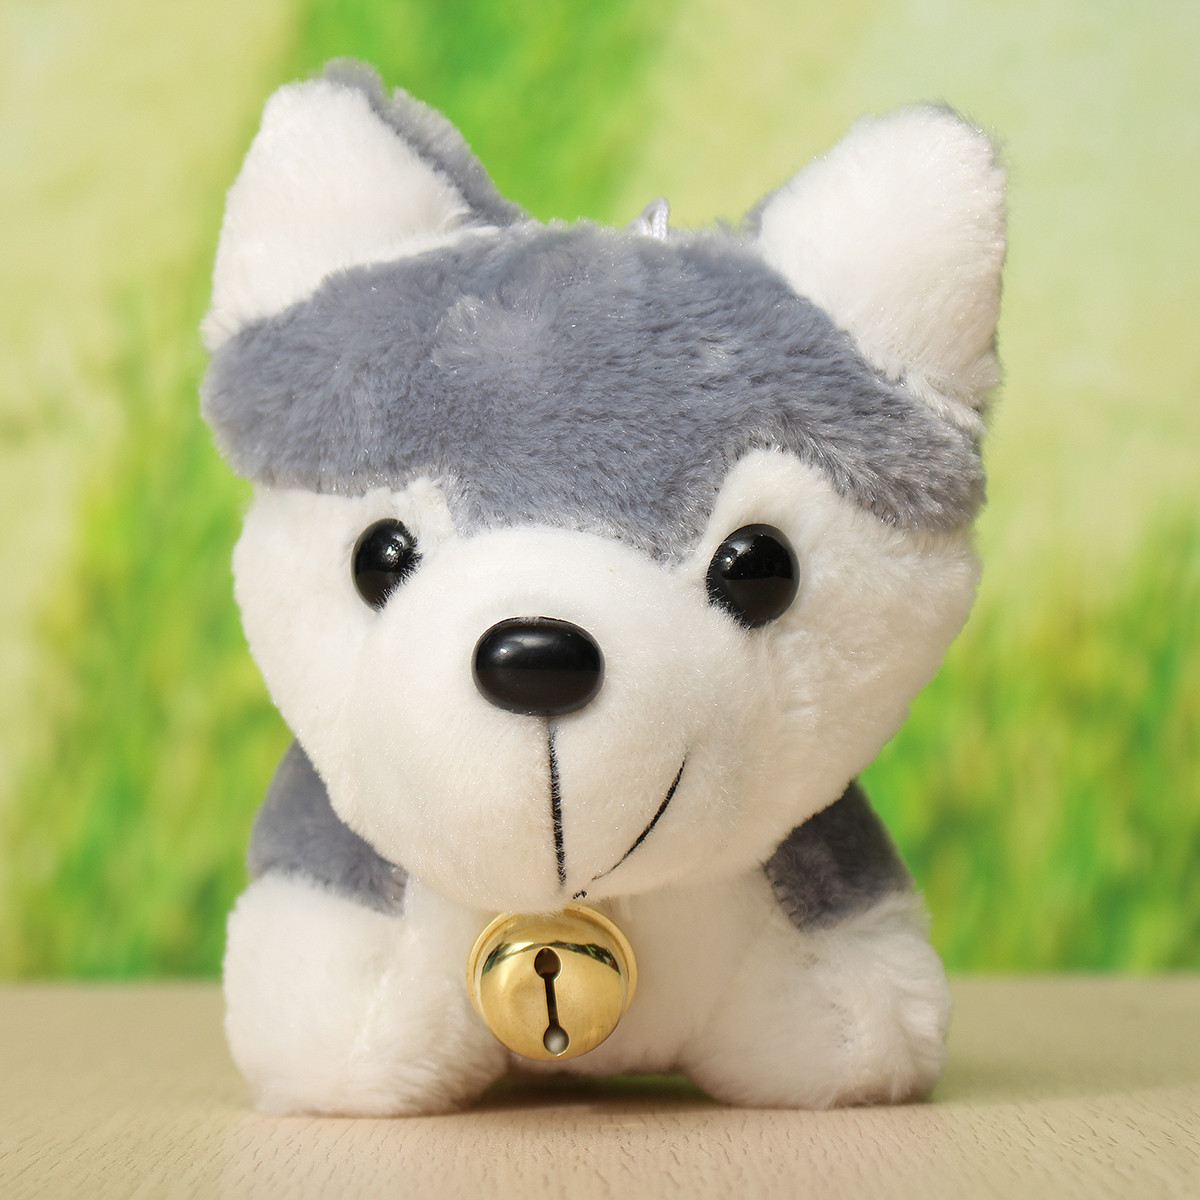 26cm 10.24'' Husky Dog Cartoon Doll Stuffed Plush Kids Children Toy Gift House Decor